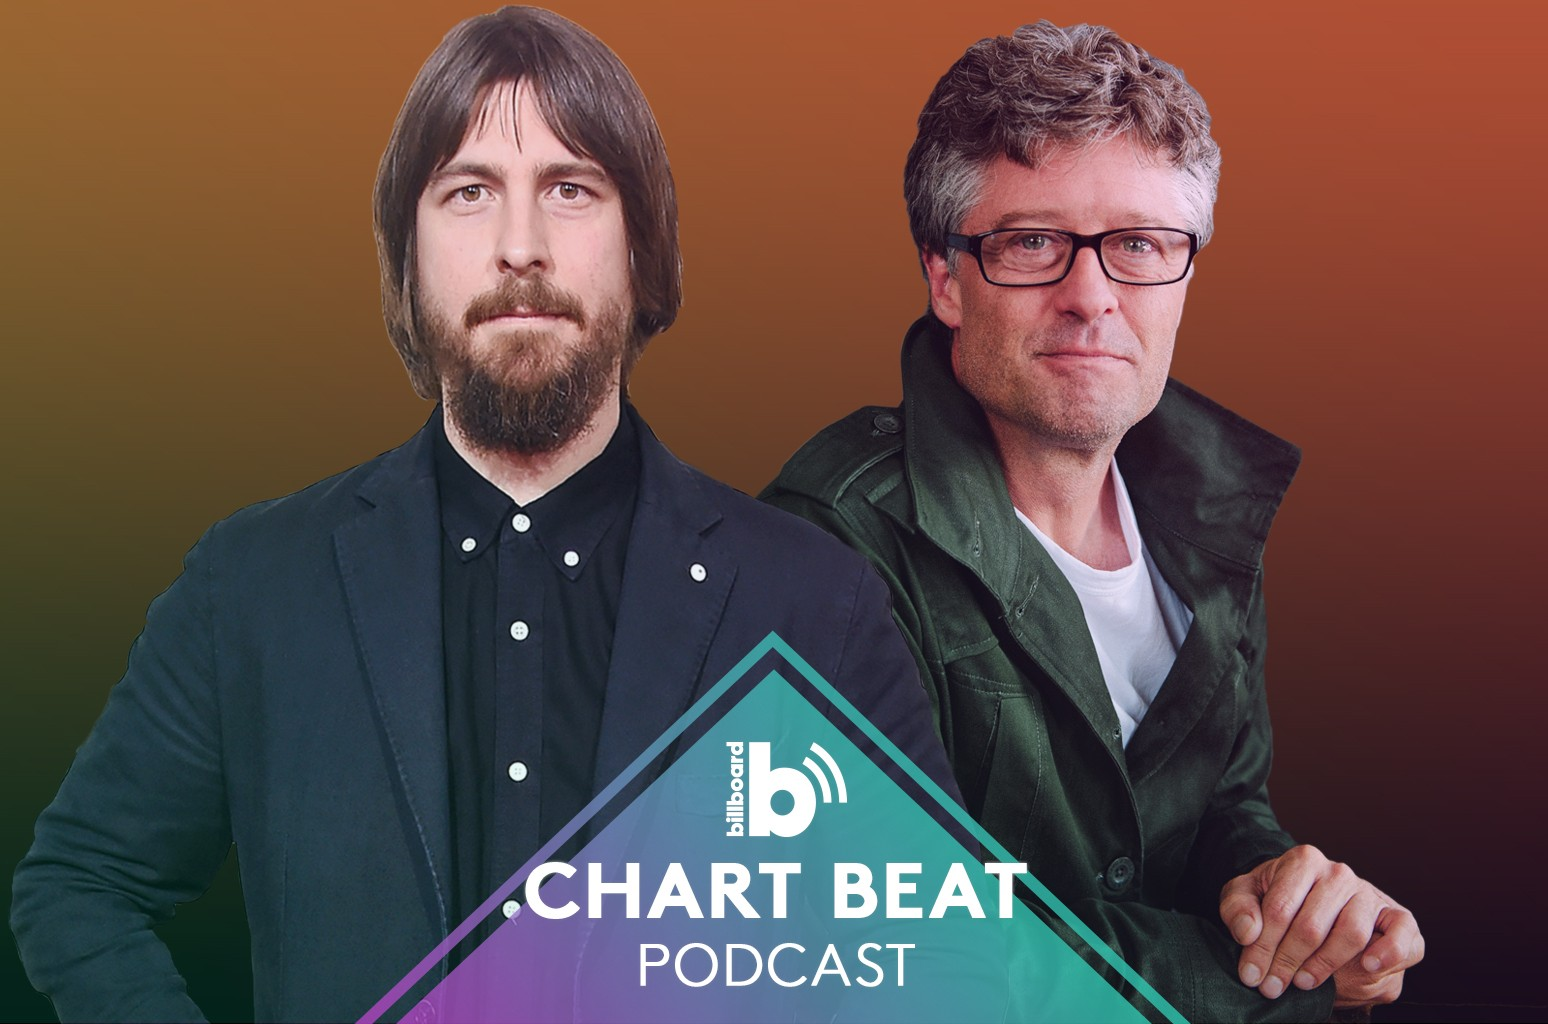 Chart Beat Podcast featuring: Dave Cobb and Jed Hilly